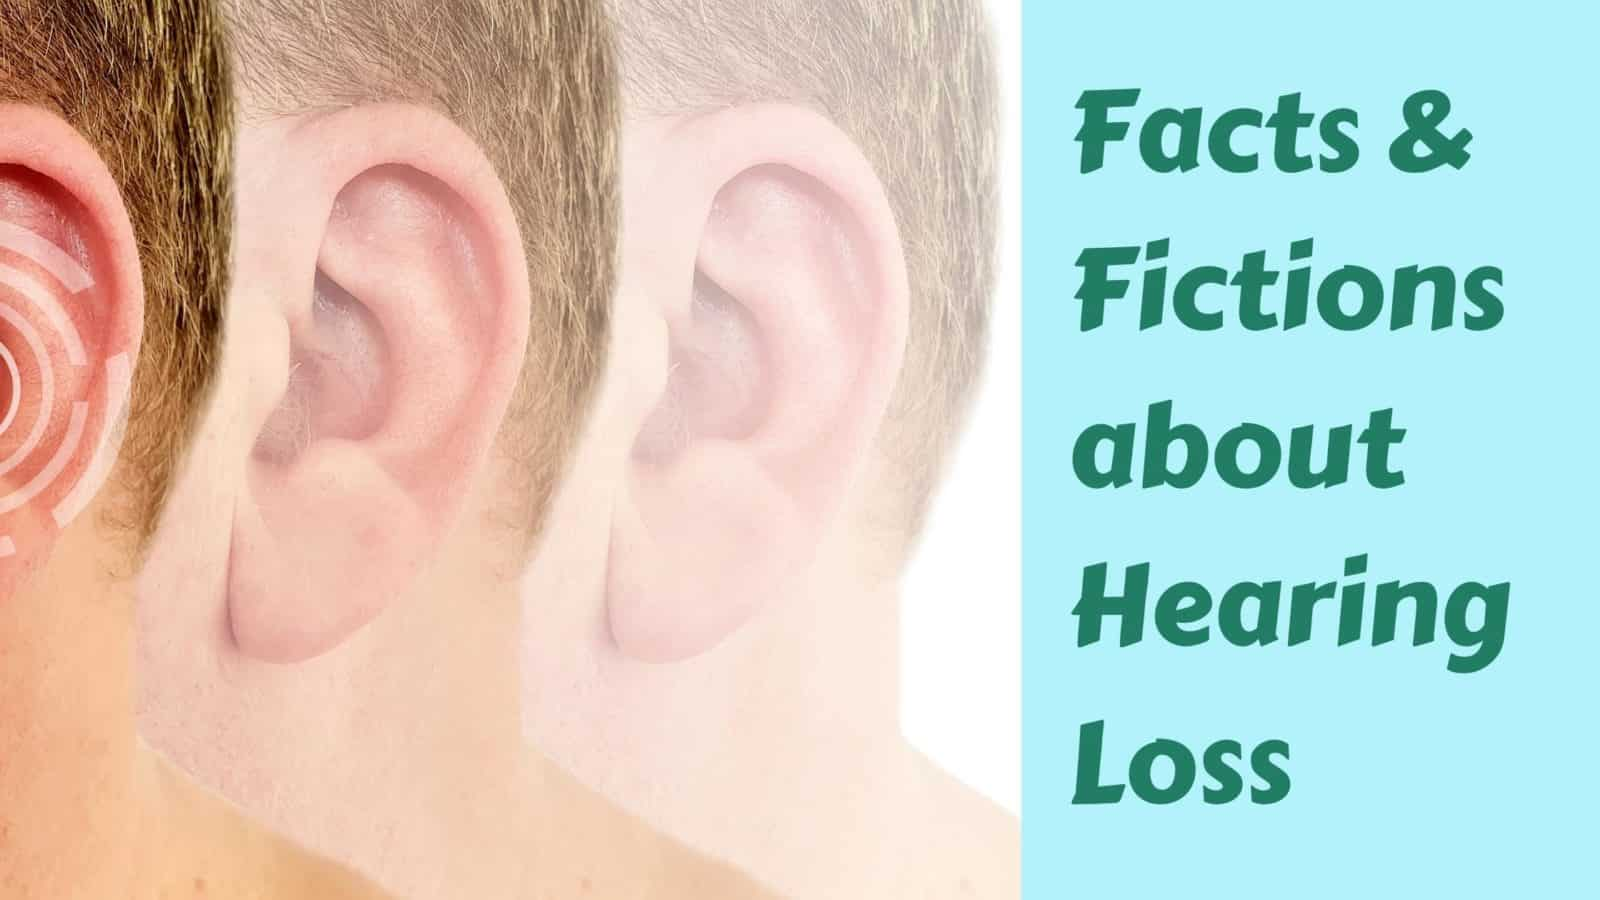 Facts & Fictions about Hearing Loss (1)